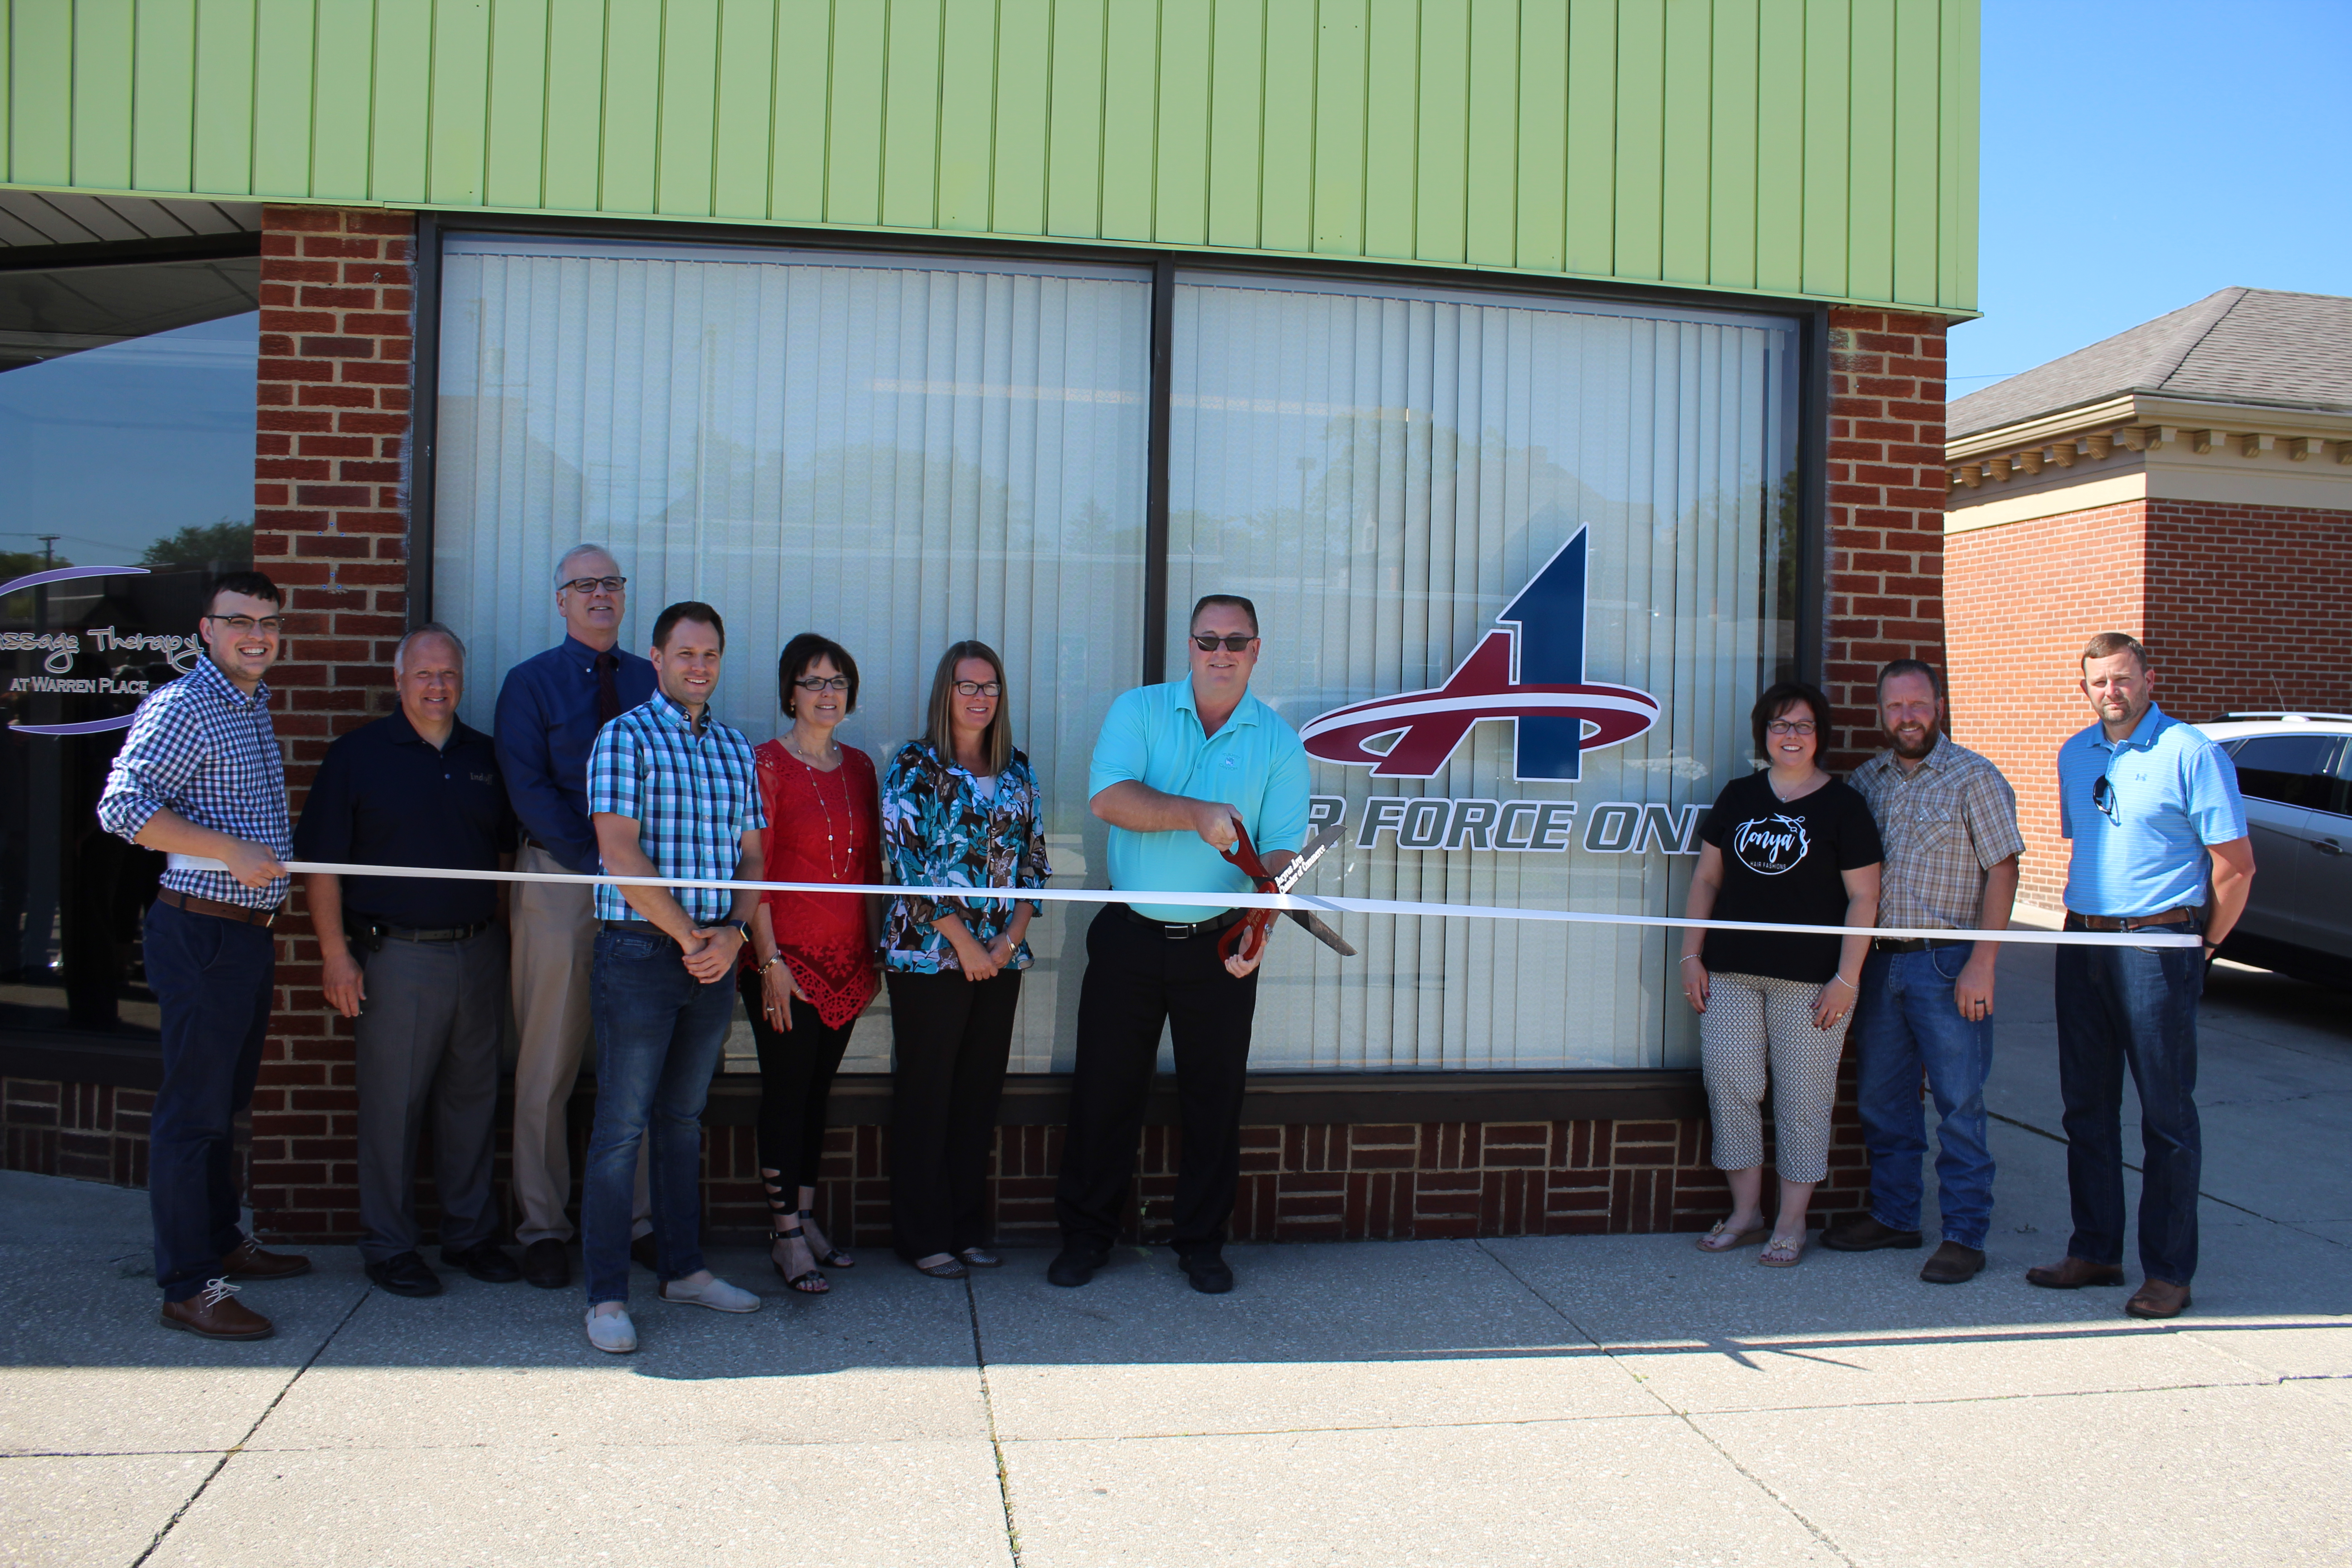 Air Force One Expands Into Bucyrus Crawford County Now